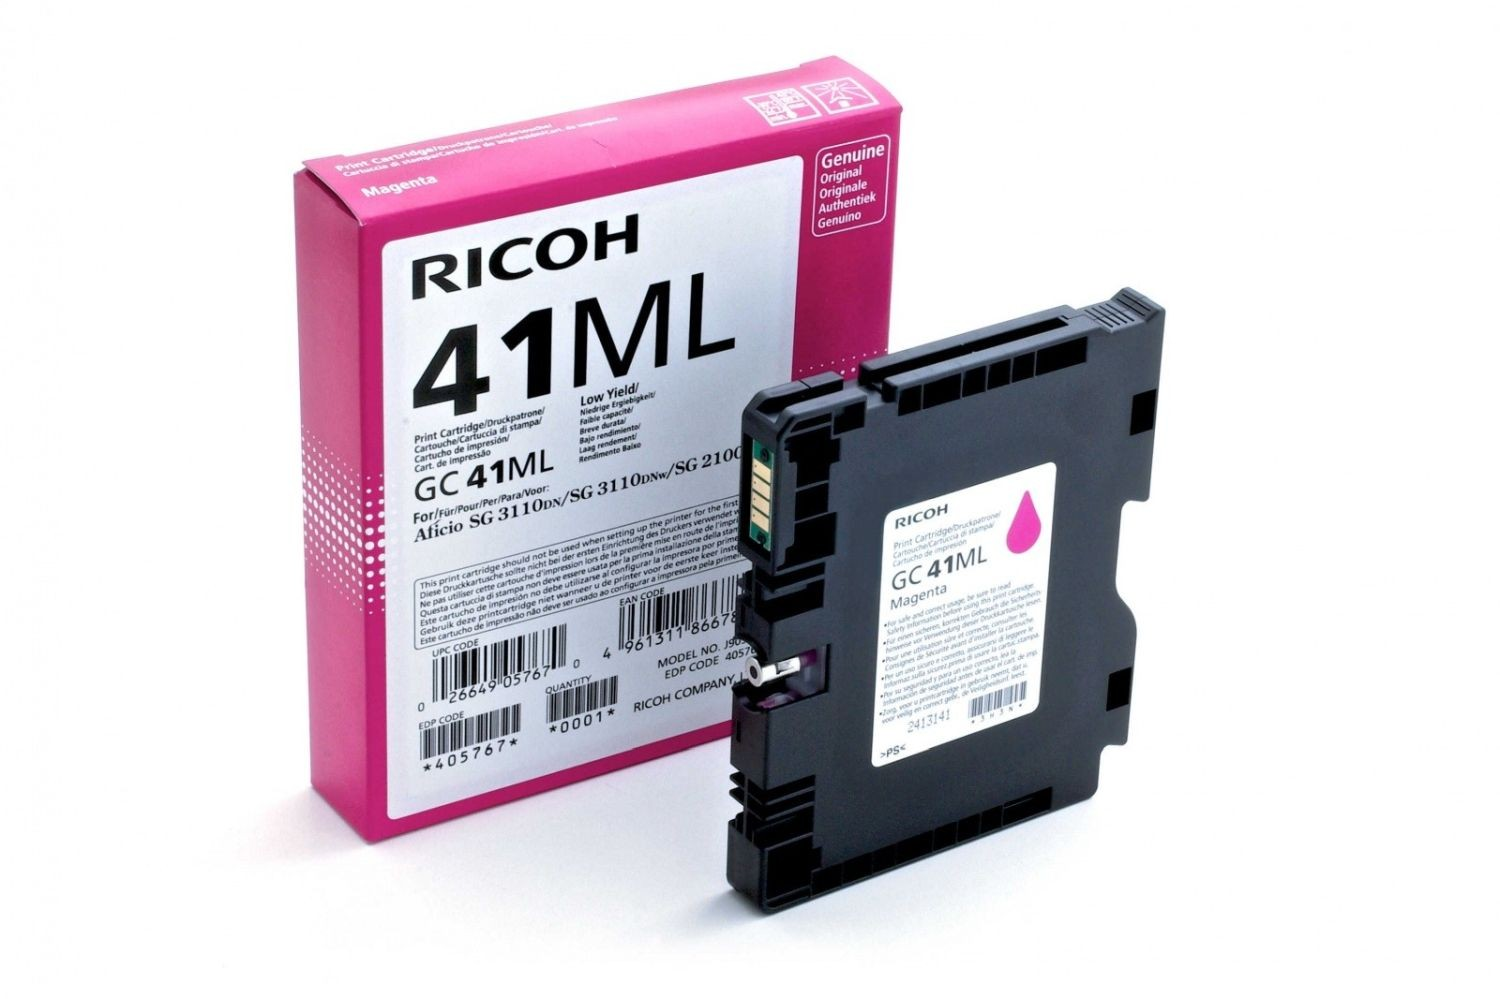 Ricoh Print Cartridge GC 41ML